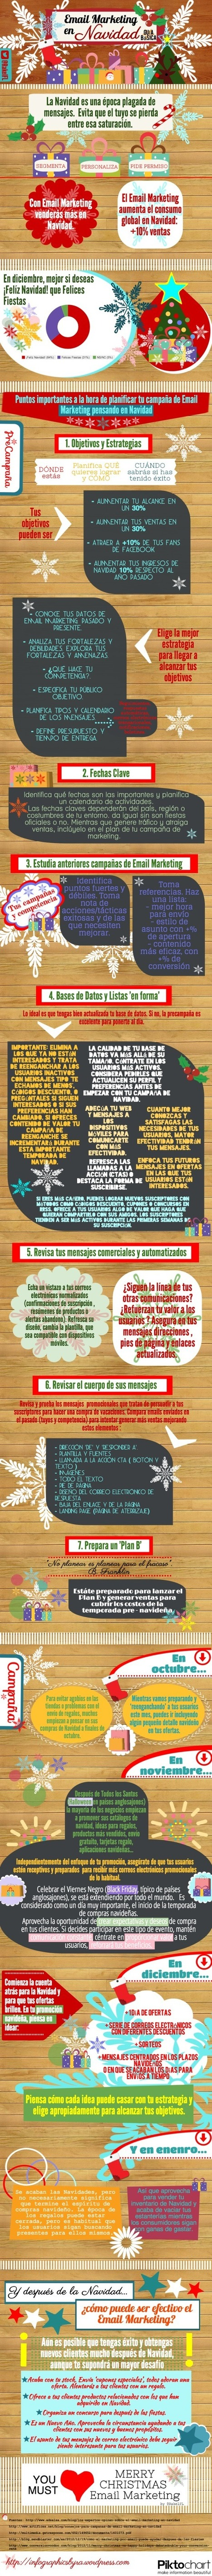 Email marketing para Navidad #infografia #infographic #marketing | Innovación y desarrollo sostenible | Scoop.it